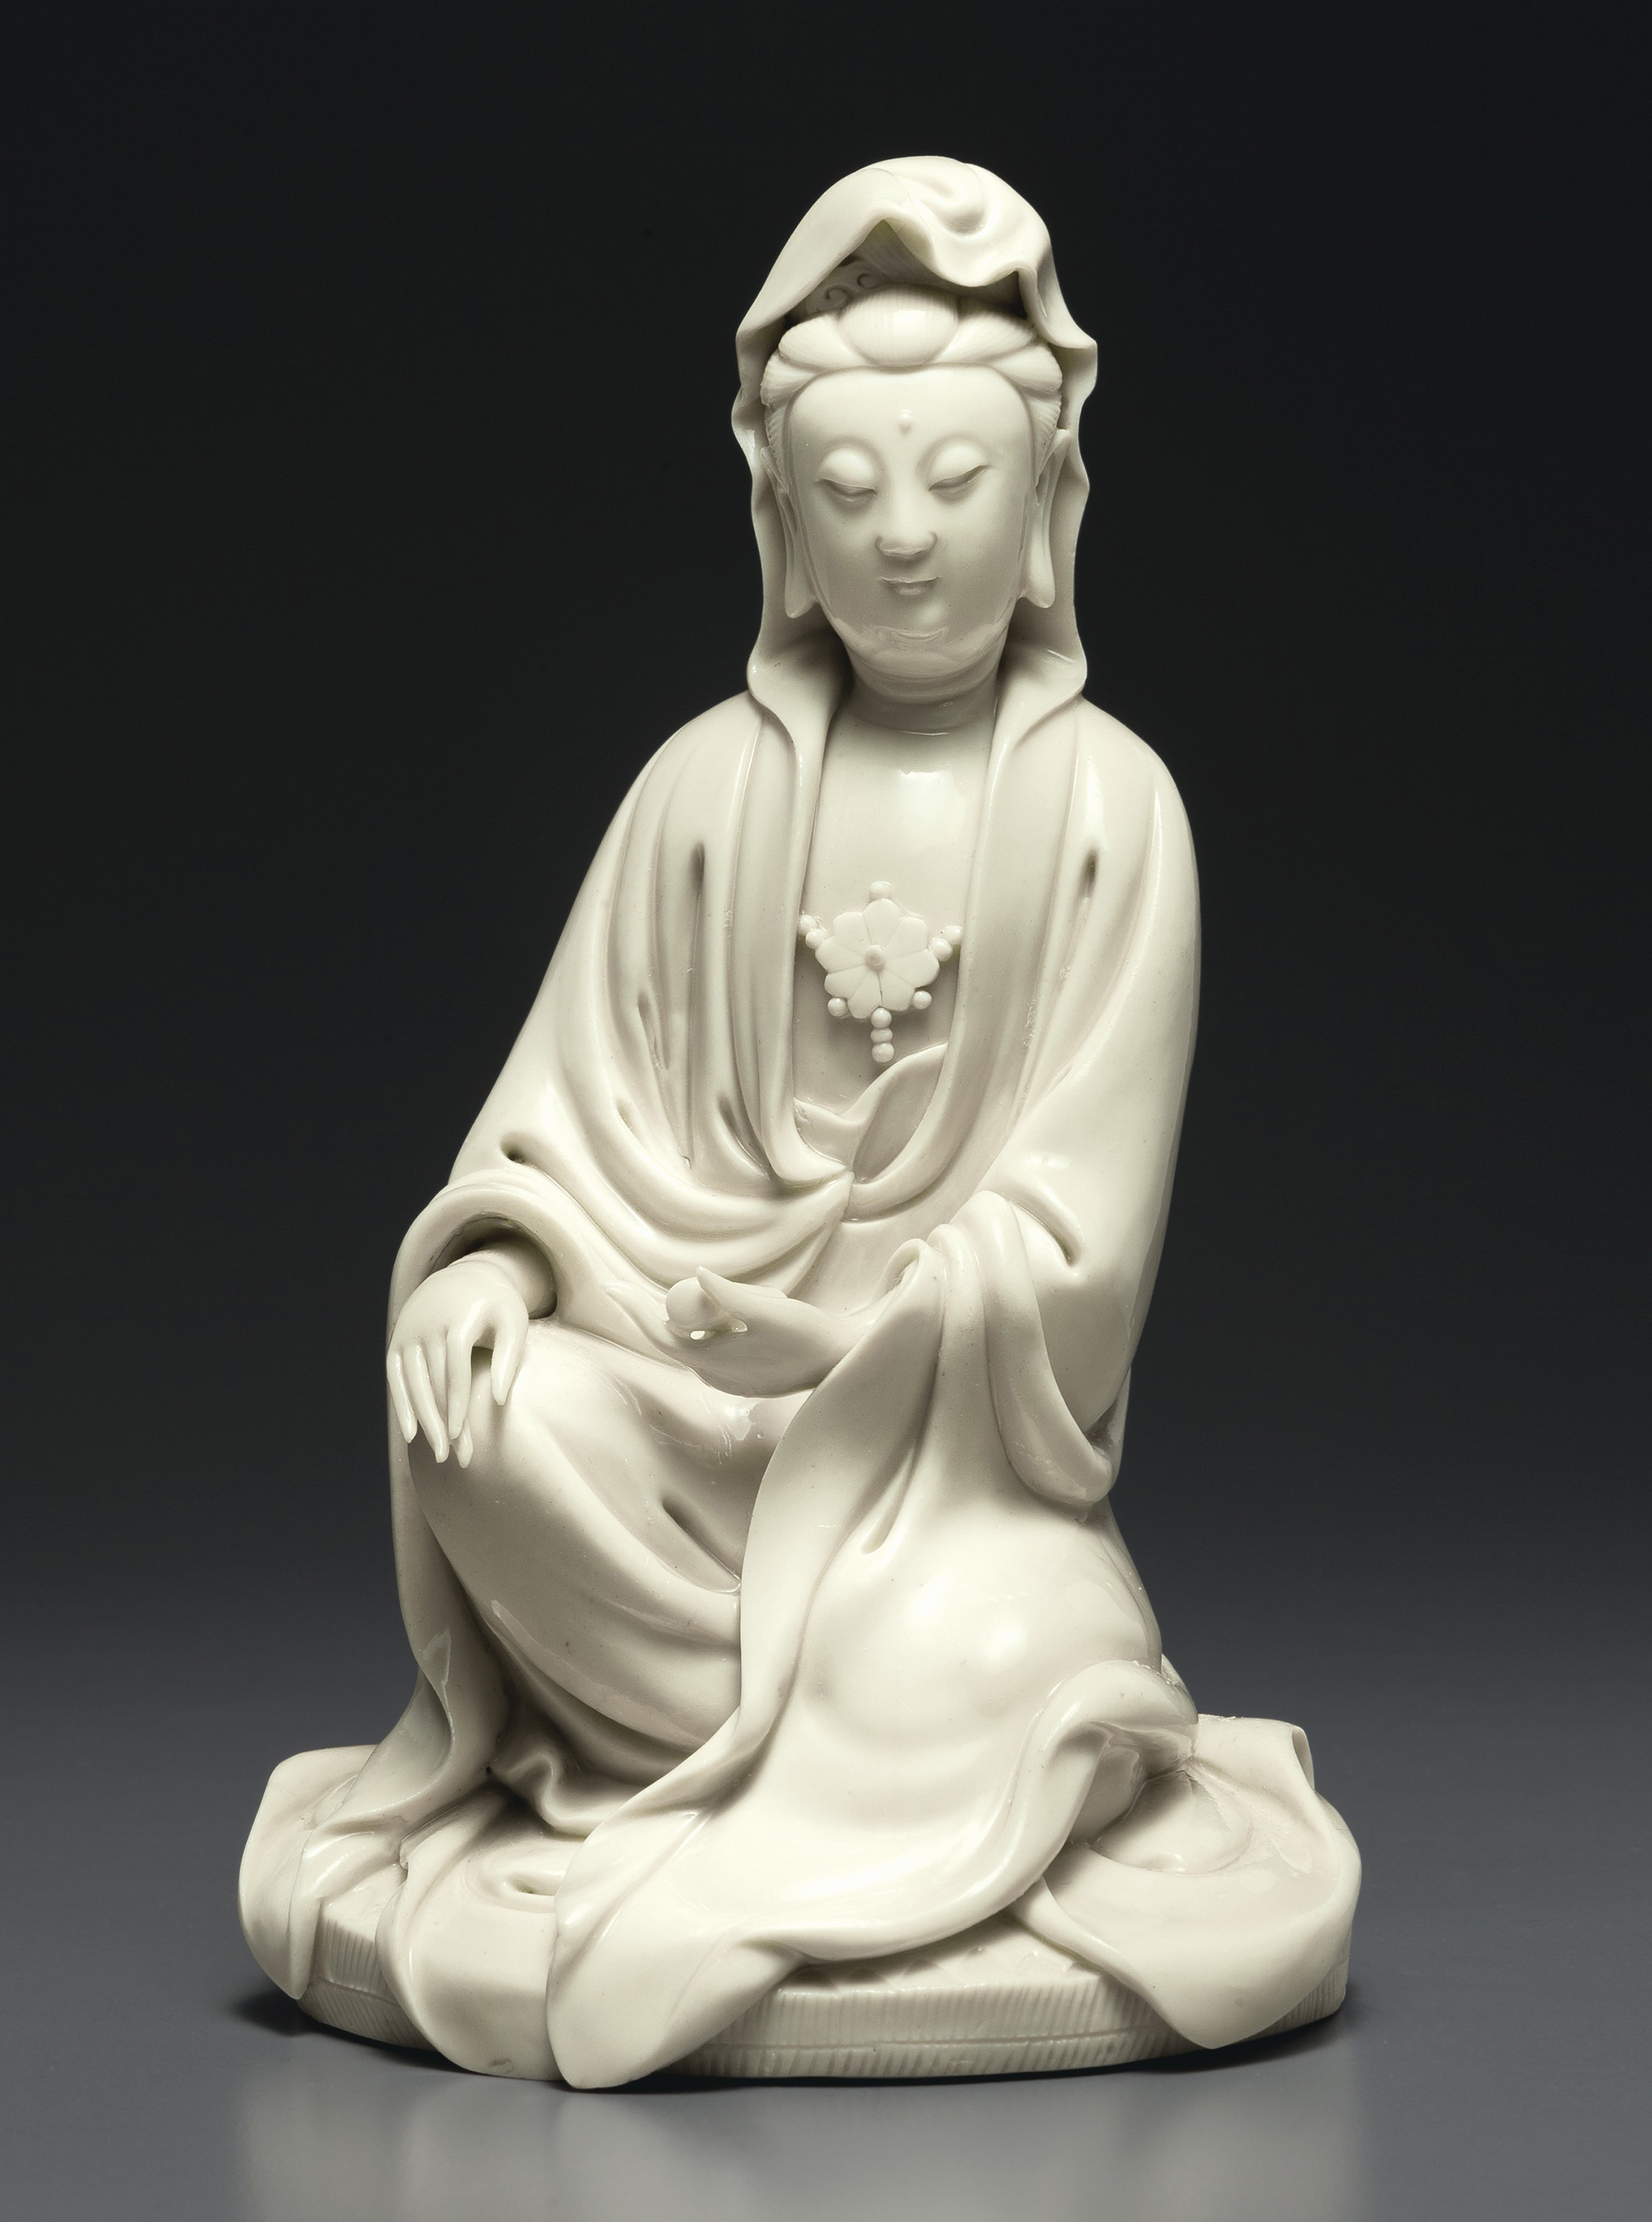 Chinese Porcelain Figures Or Figurines Price Guide